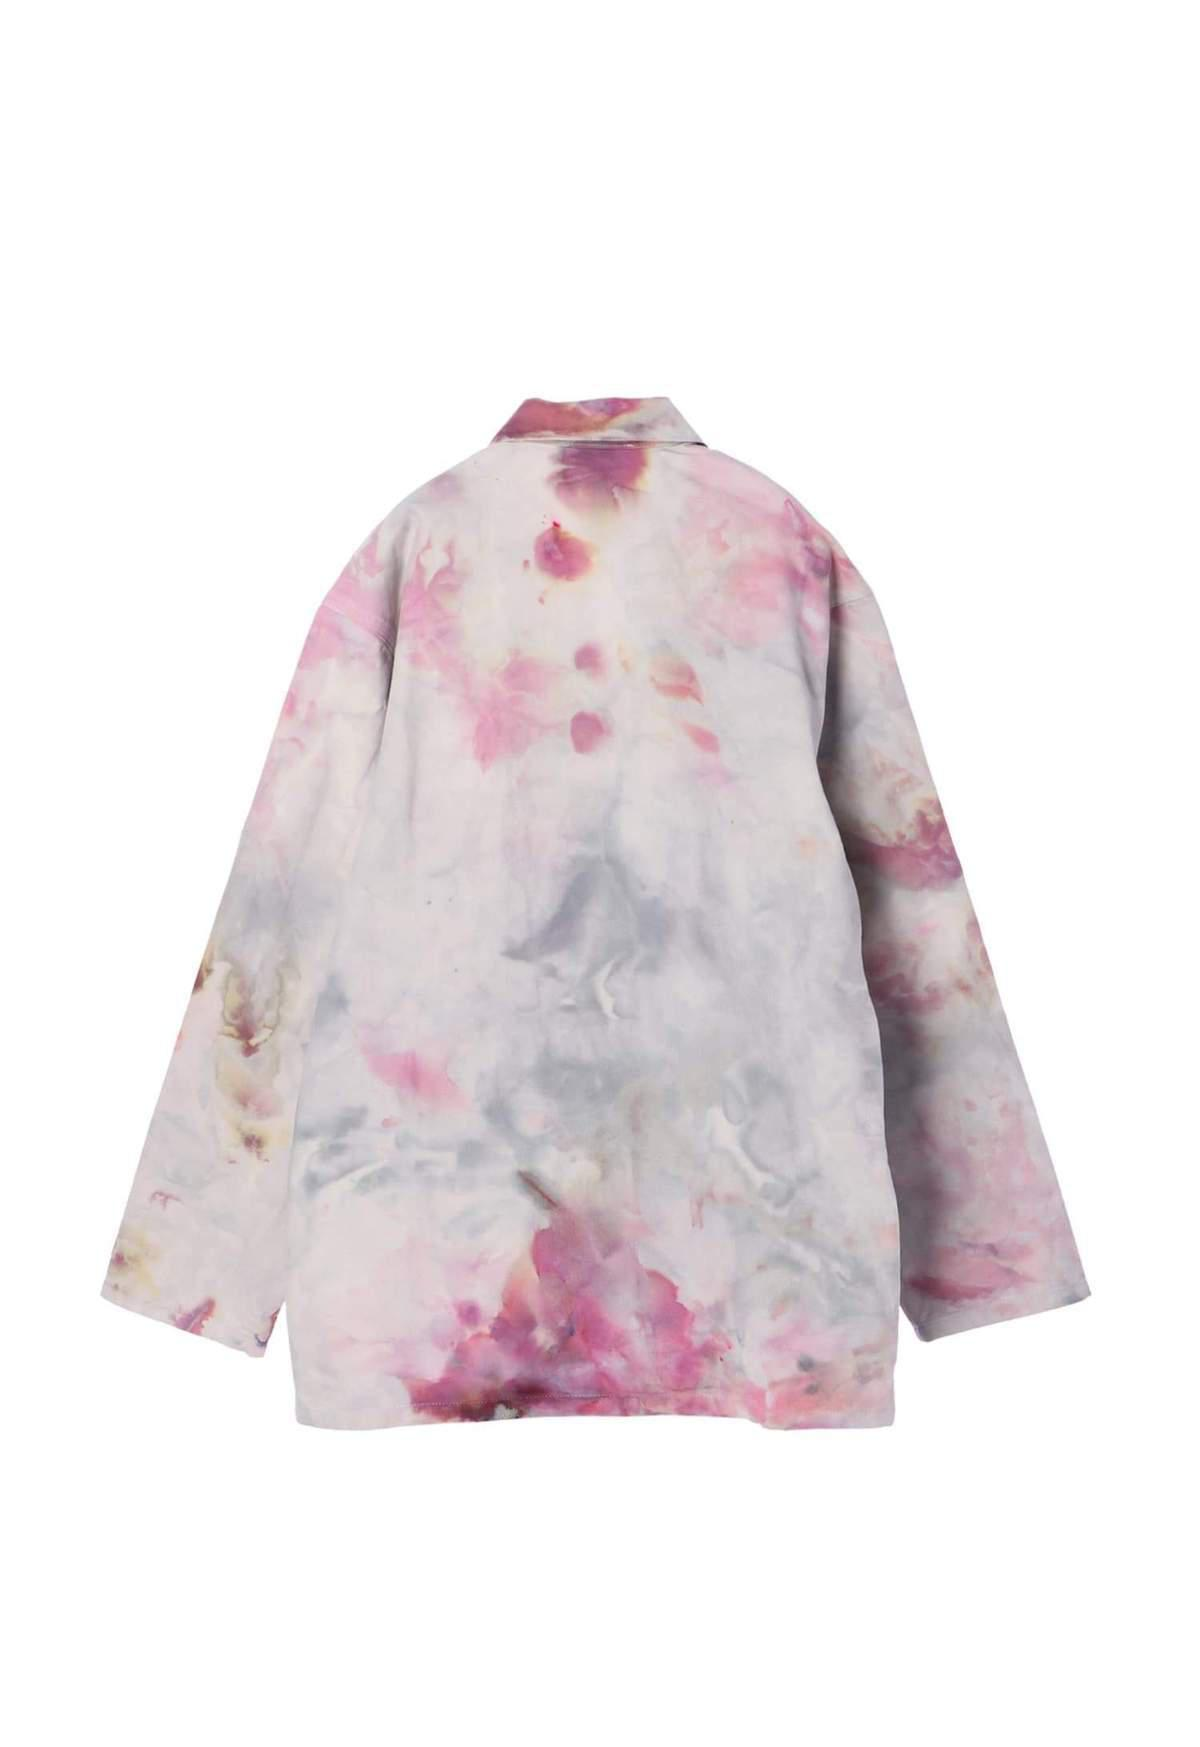 Hand Tie Dyed Vintage Dead Stock Jacket 7